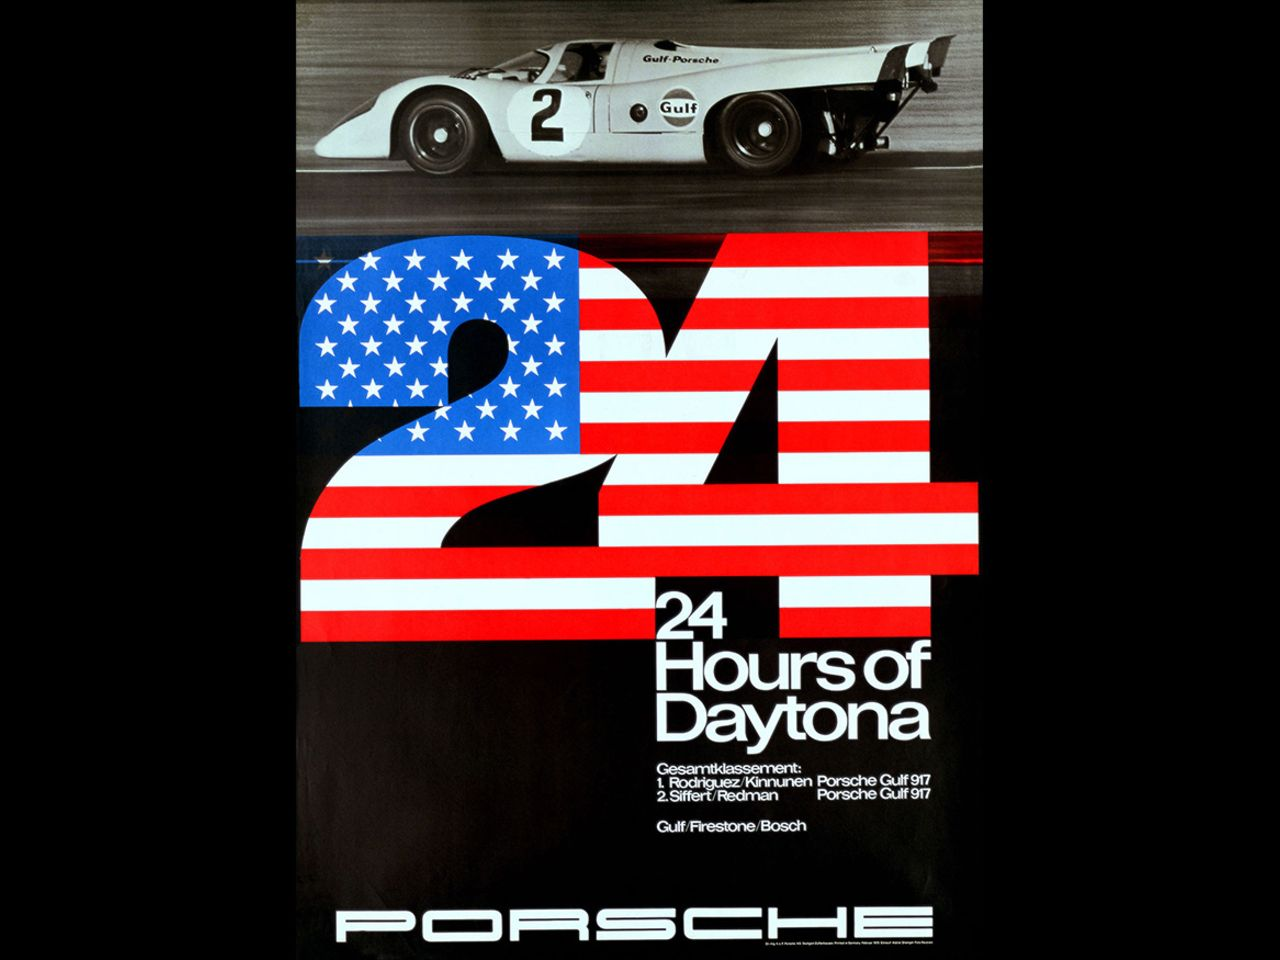 ... or this one showing the 24 Hours of Daytona in 1970 with the celebrated Porsche 917.